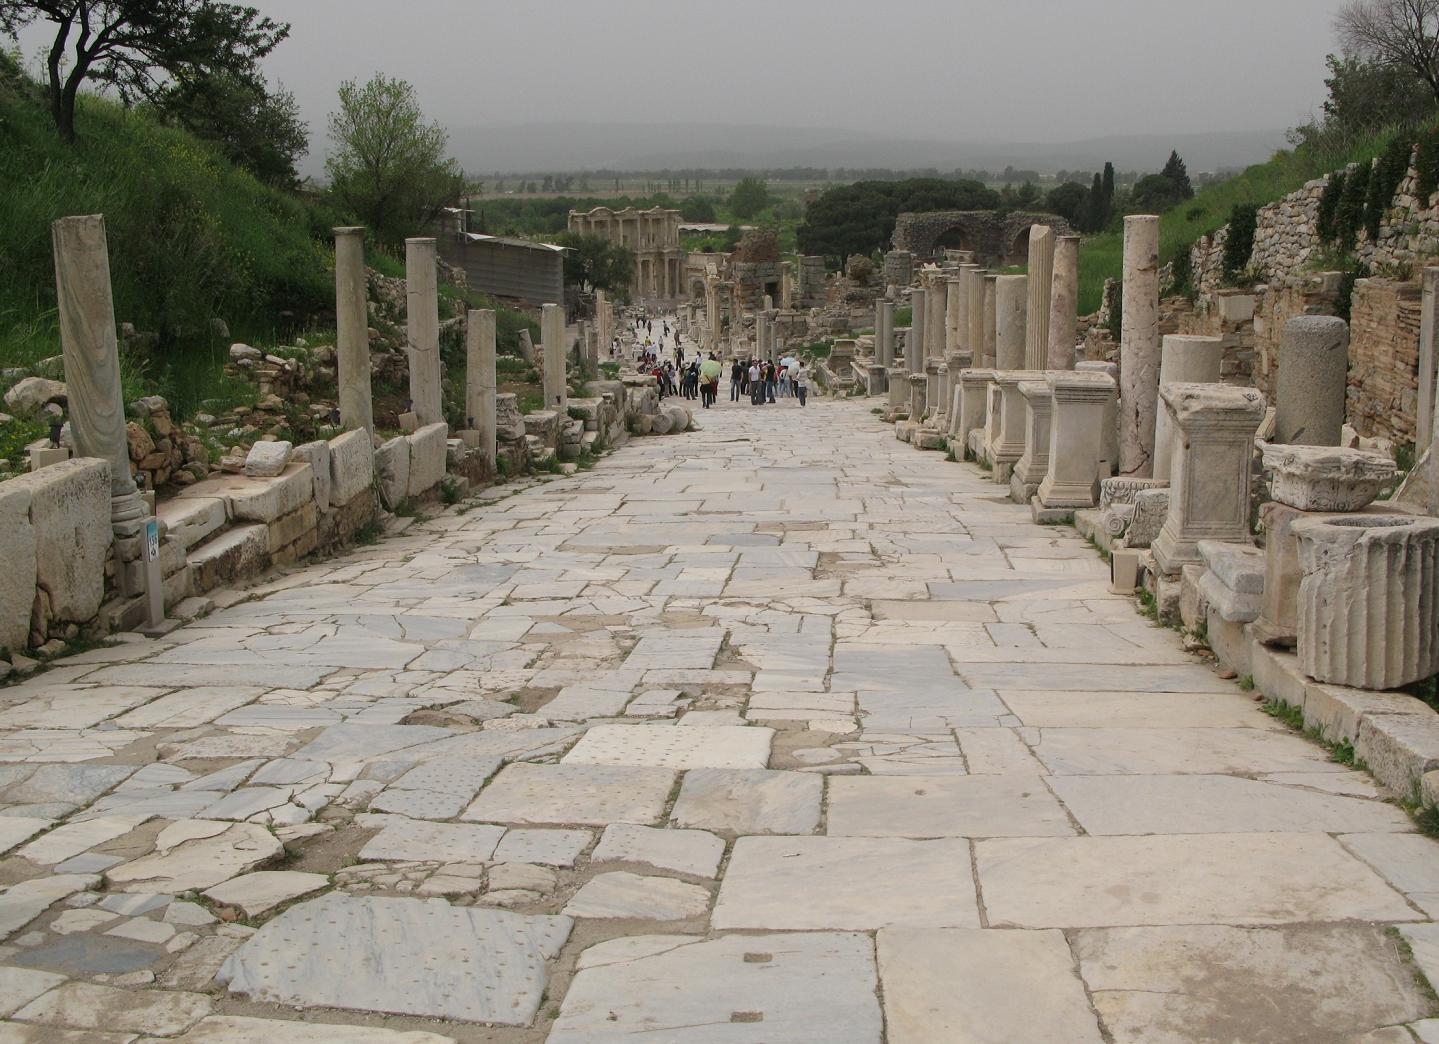 """Ephesus would not make an unlikely candidate for the location of Apollonius' farewell to life"" - photo: Thom Walstrum <http://thom.walstrum.com/2008_04_01_archive.html>"